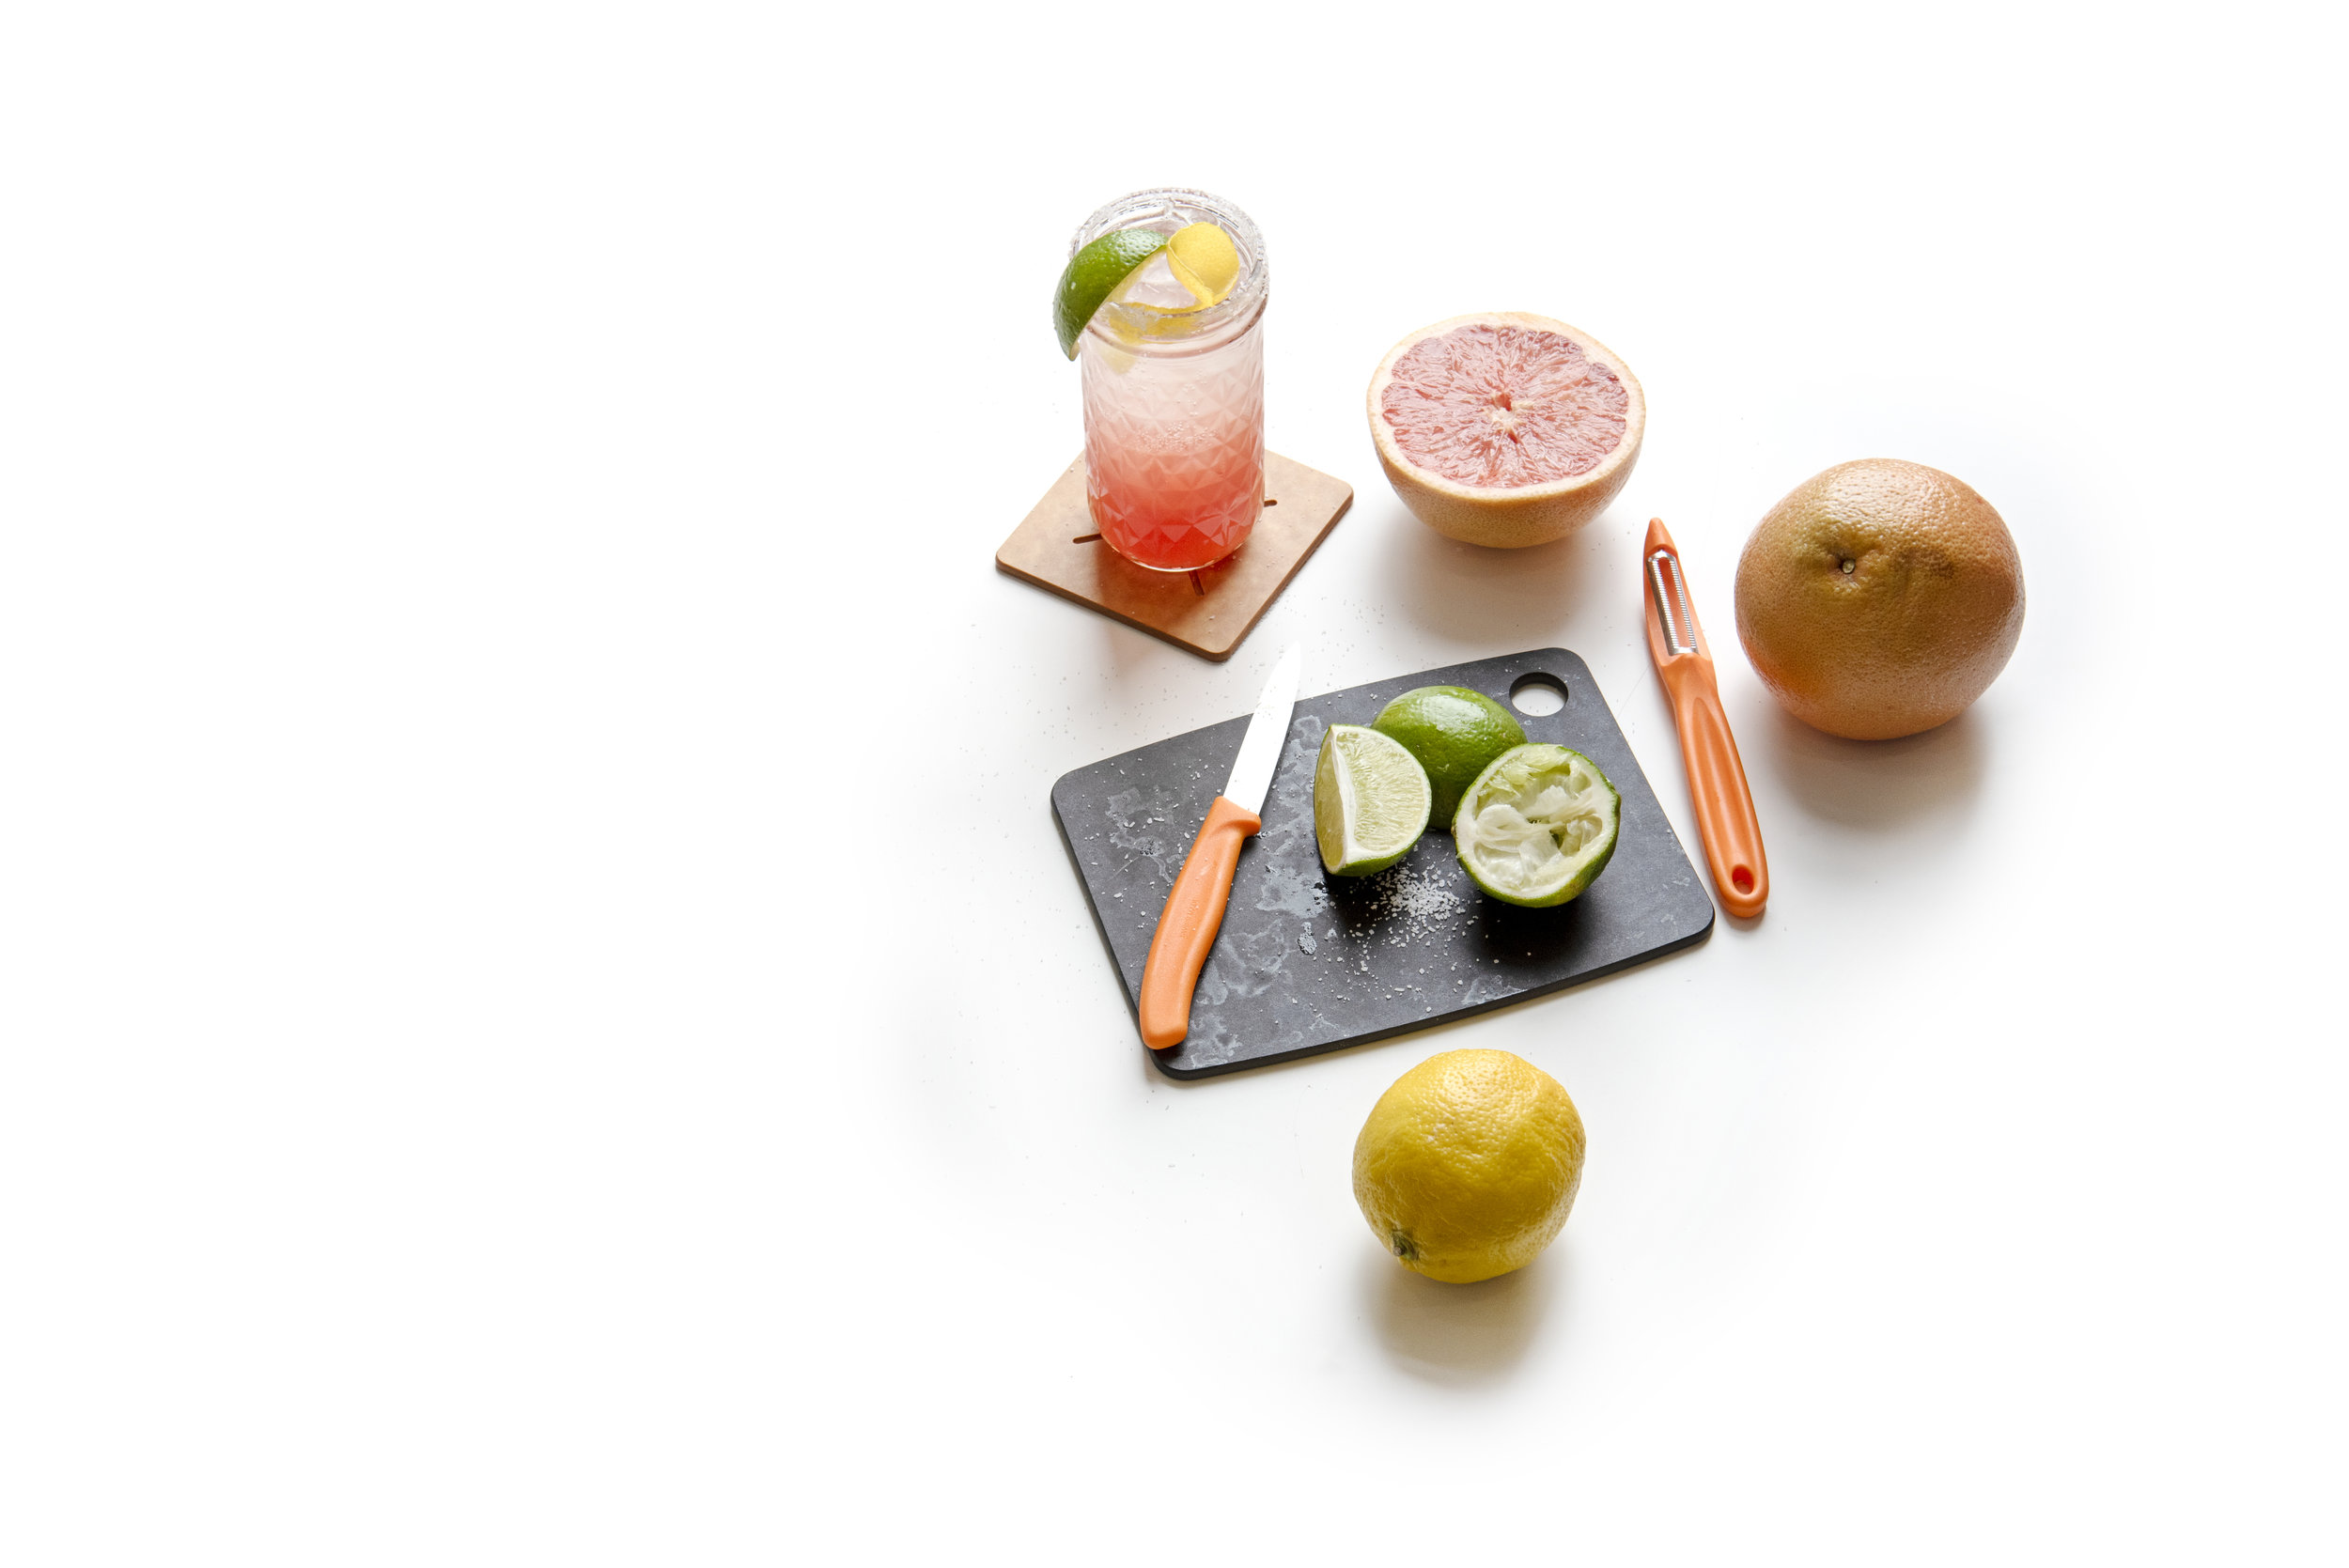 "Signature Combo SetOnly $24.99 - 8"" x 6"" Kitchen Series Bar Board in SlateFour Piece Coaster Set in Natural Victorinox Paring Knife & Peeler setSignature Palomarita Recipe!Available while supplies last, at the Epicurean Outlet!"